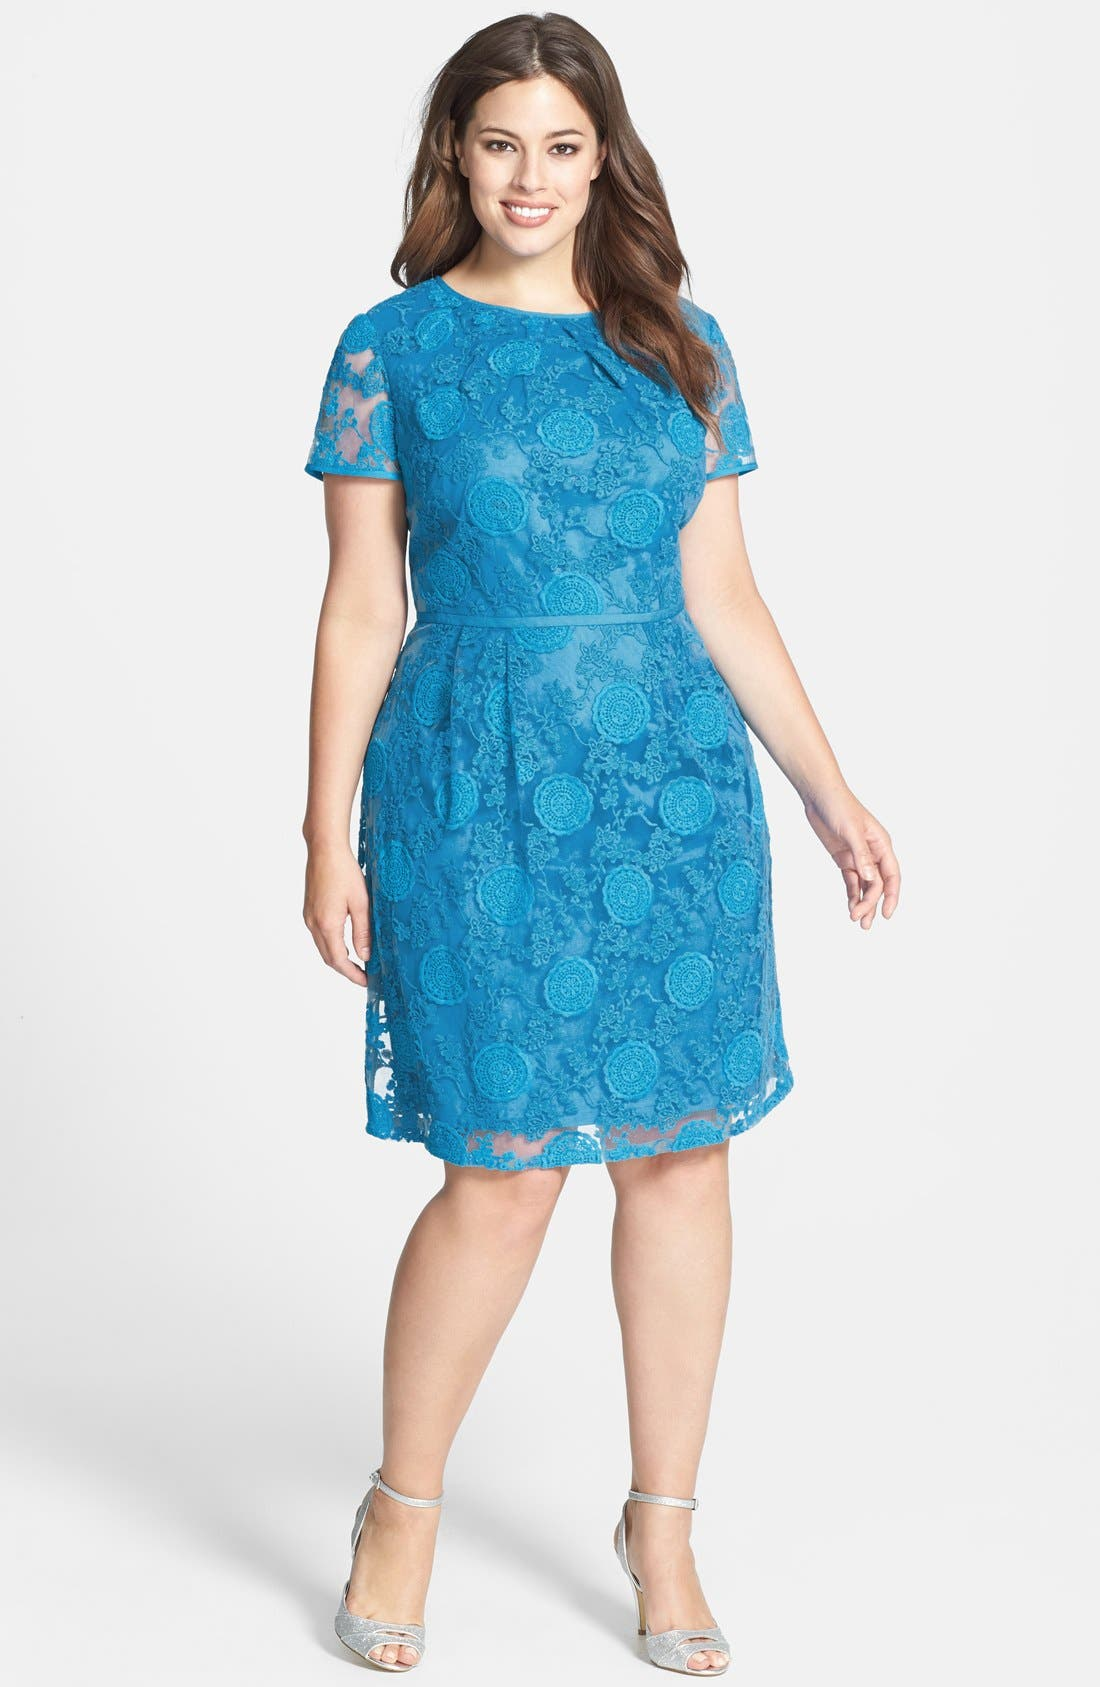 Alternate Image 1 Selected - Adrianna Papell 'Pleats' Lace Dress (Plus Size)